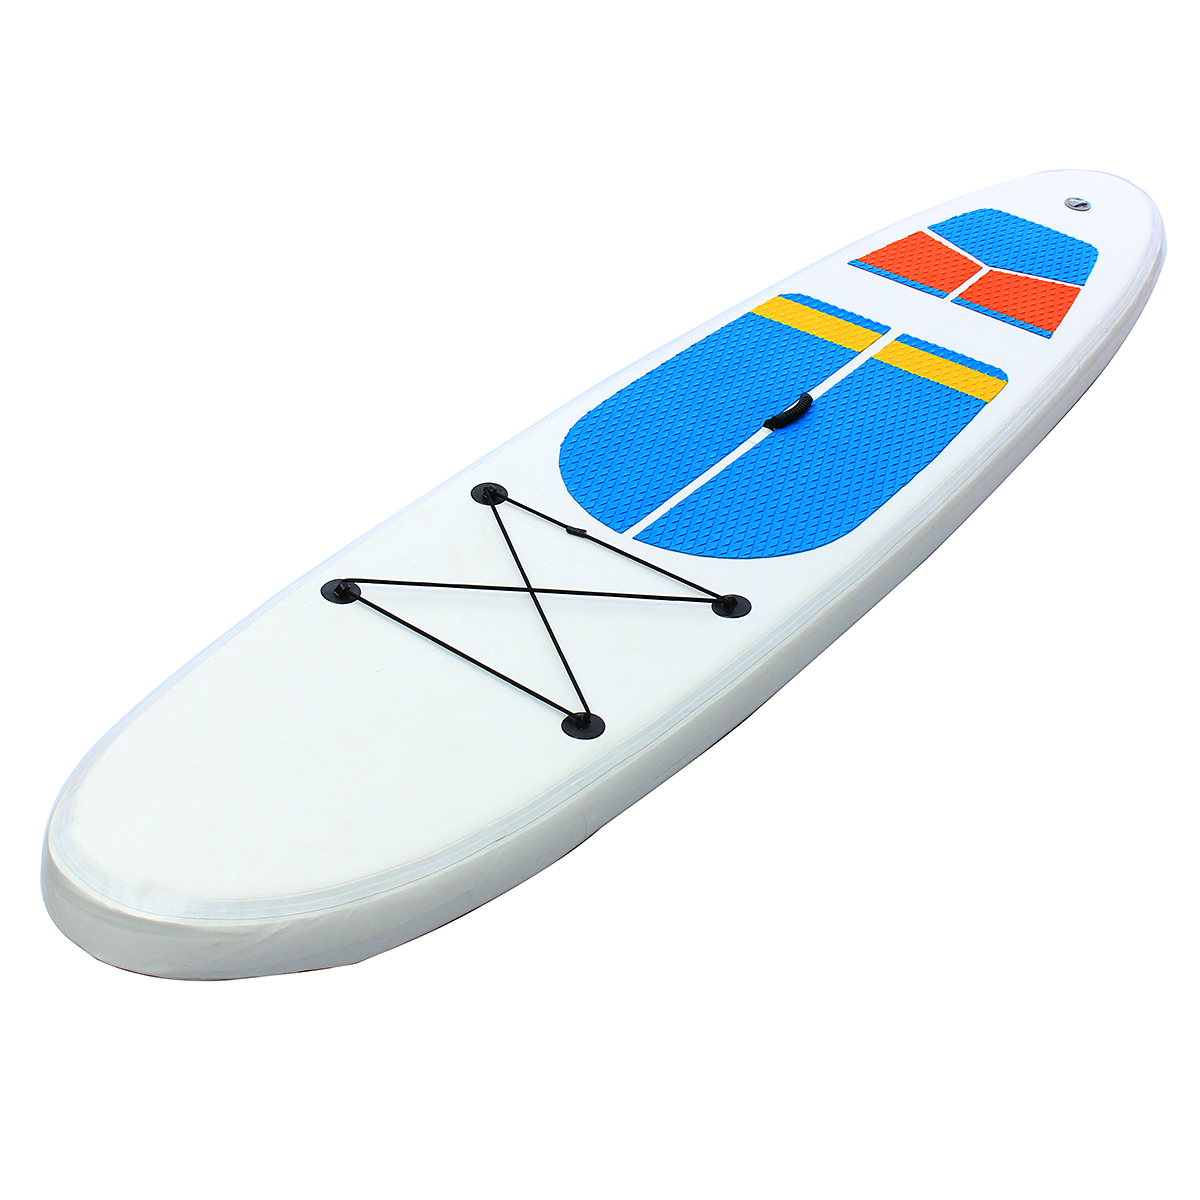 10ft x 2.5ft SUP Standup Paddleboarding Stand Up Paddle Surfboard  Inflatable Board with Travel Backpack Hand Pump for Surfing/ Aqua Yoga/Fishing